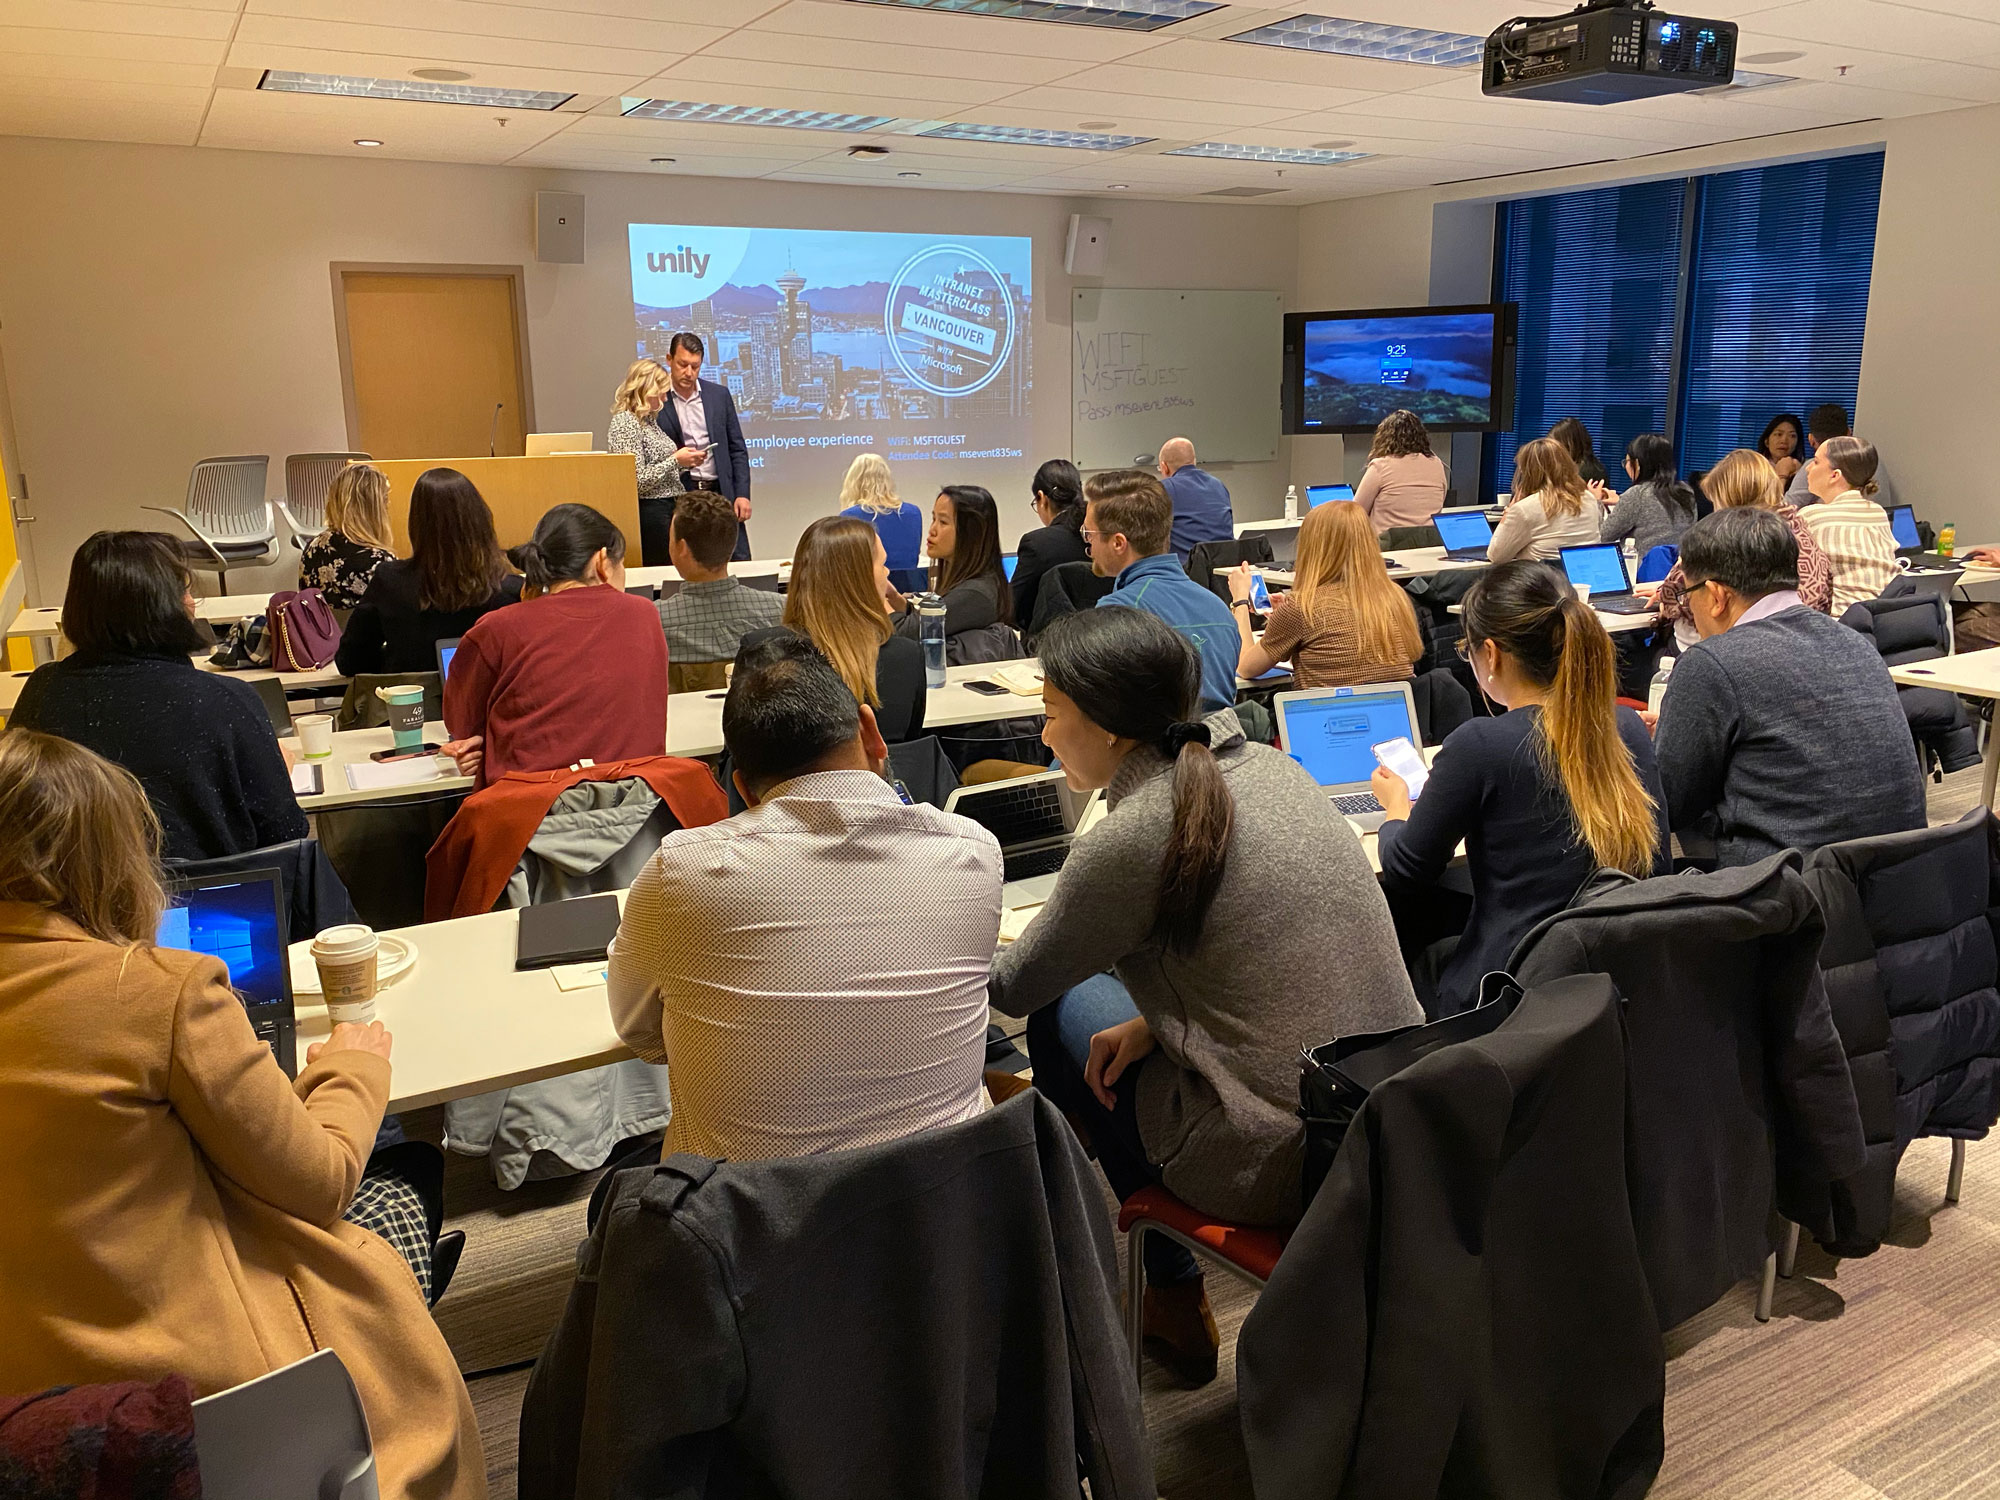 Unily Canada masterclass attendees